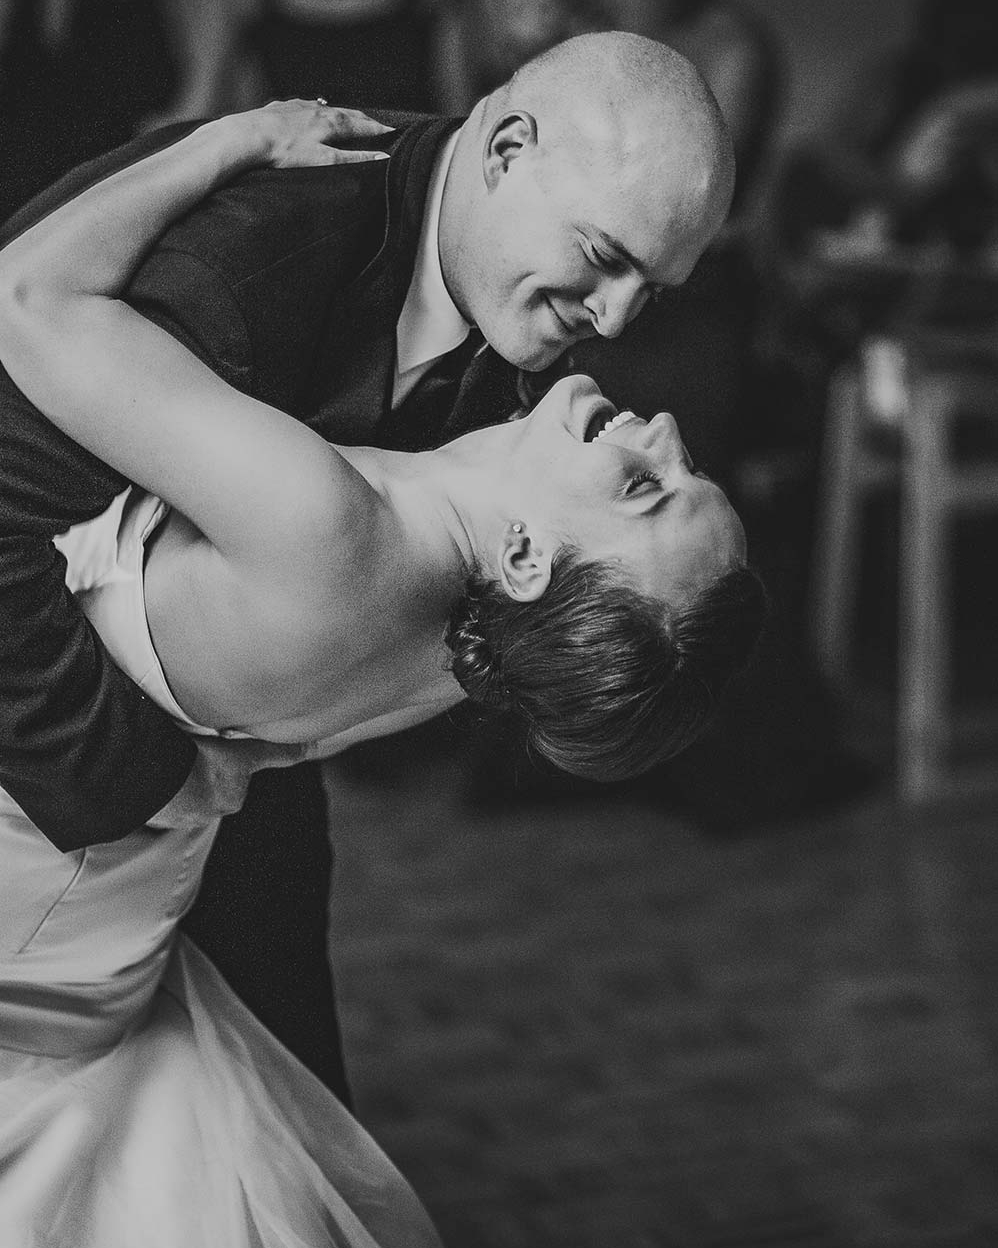 Capturing the moment. - The embrace of a loved one. The laughter of a friend. The first time you look into each other's eyes as a married couple. The last crazy dance of the night.These are your moments. And I want to help you remember them forever.